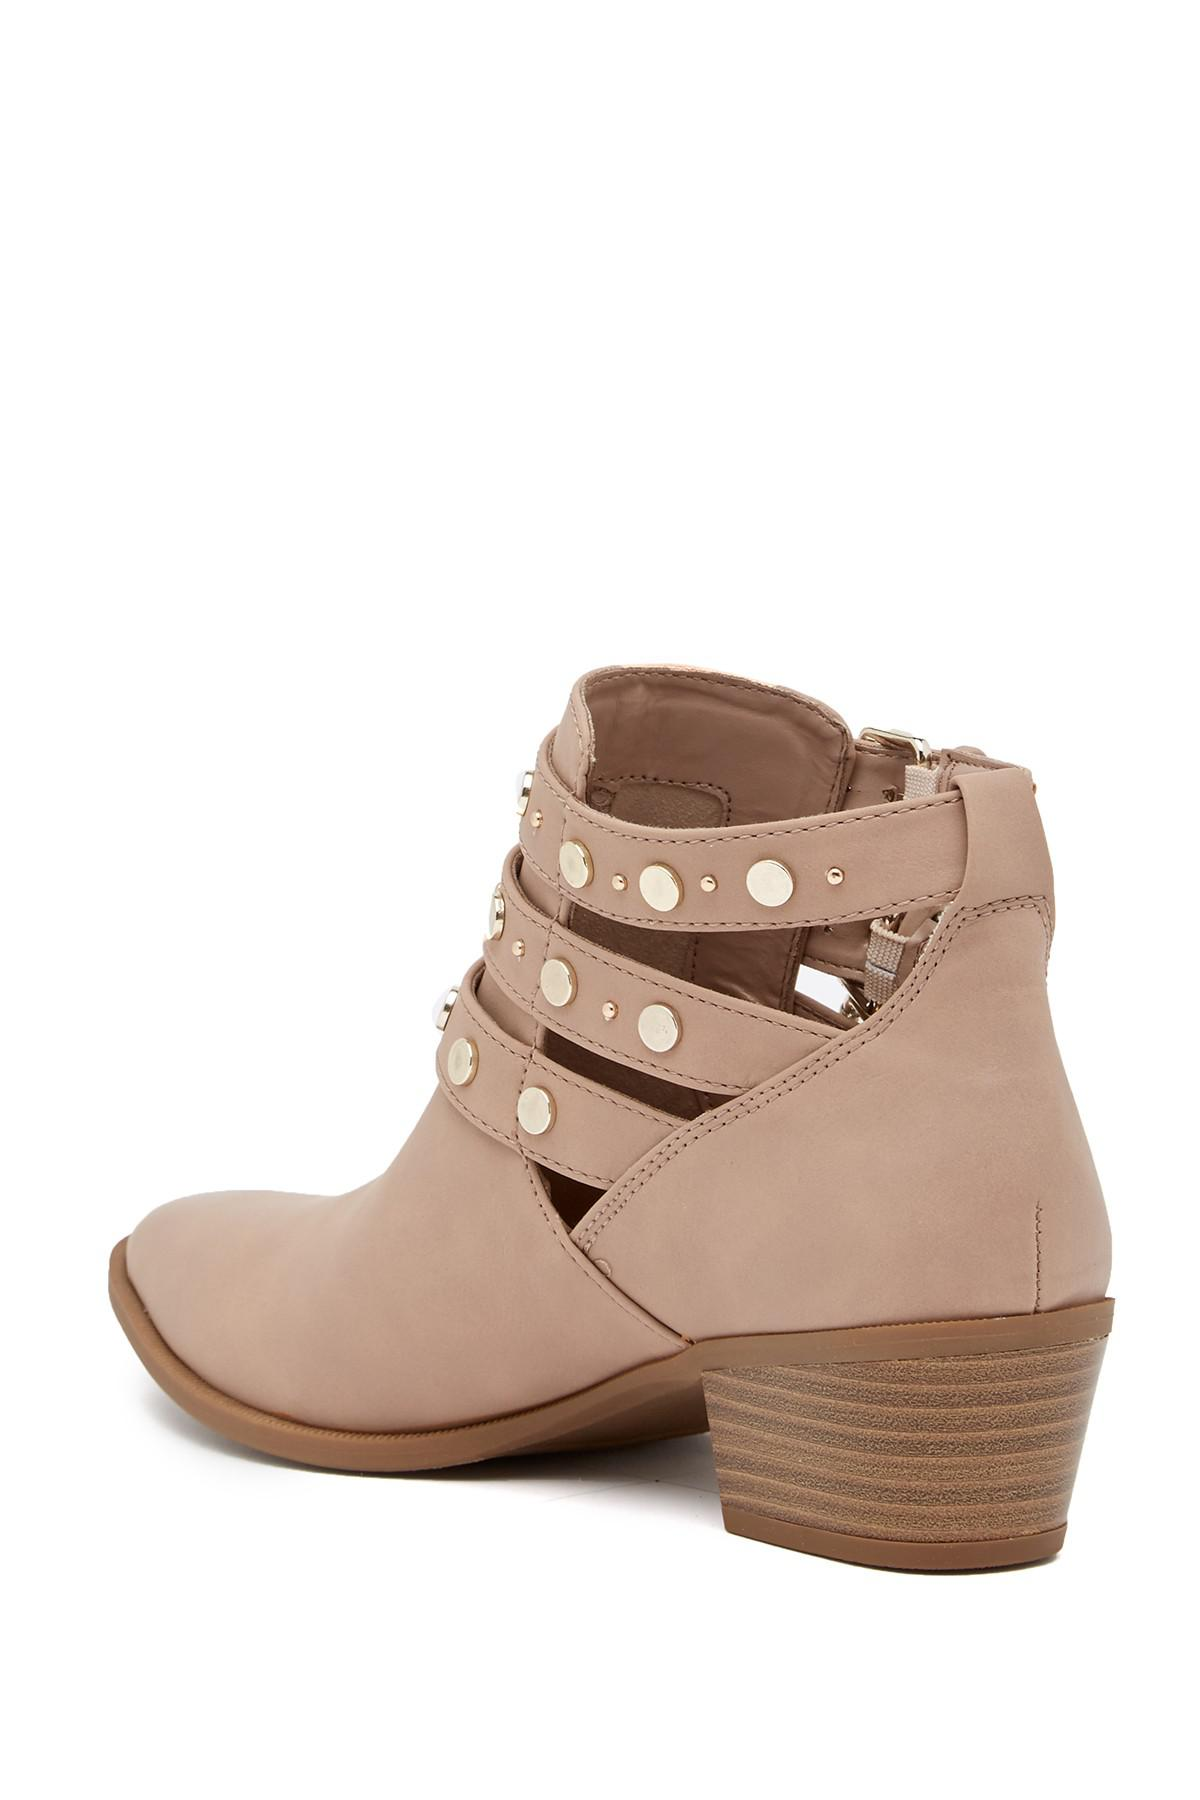 39b31c50a99c Lyst - Circus by Sam Edelman Henna Bootie in Brown